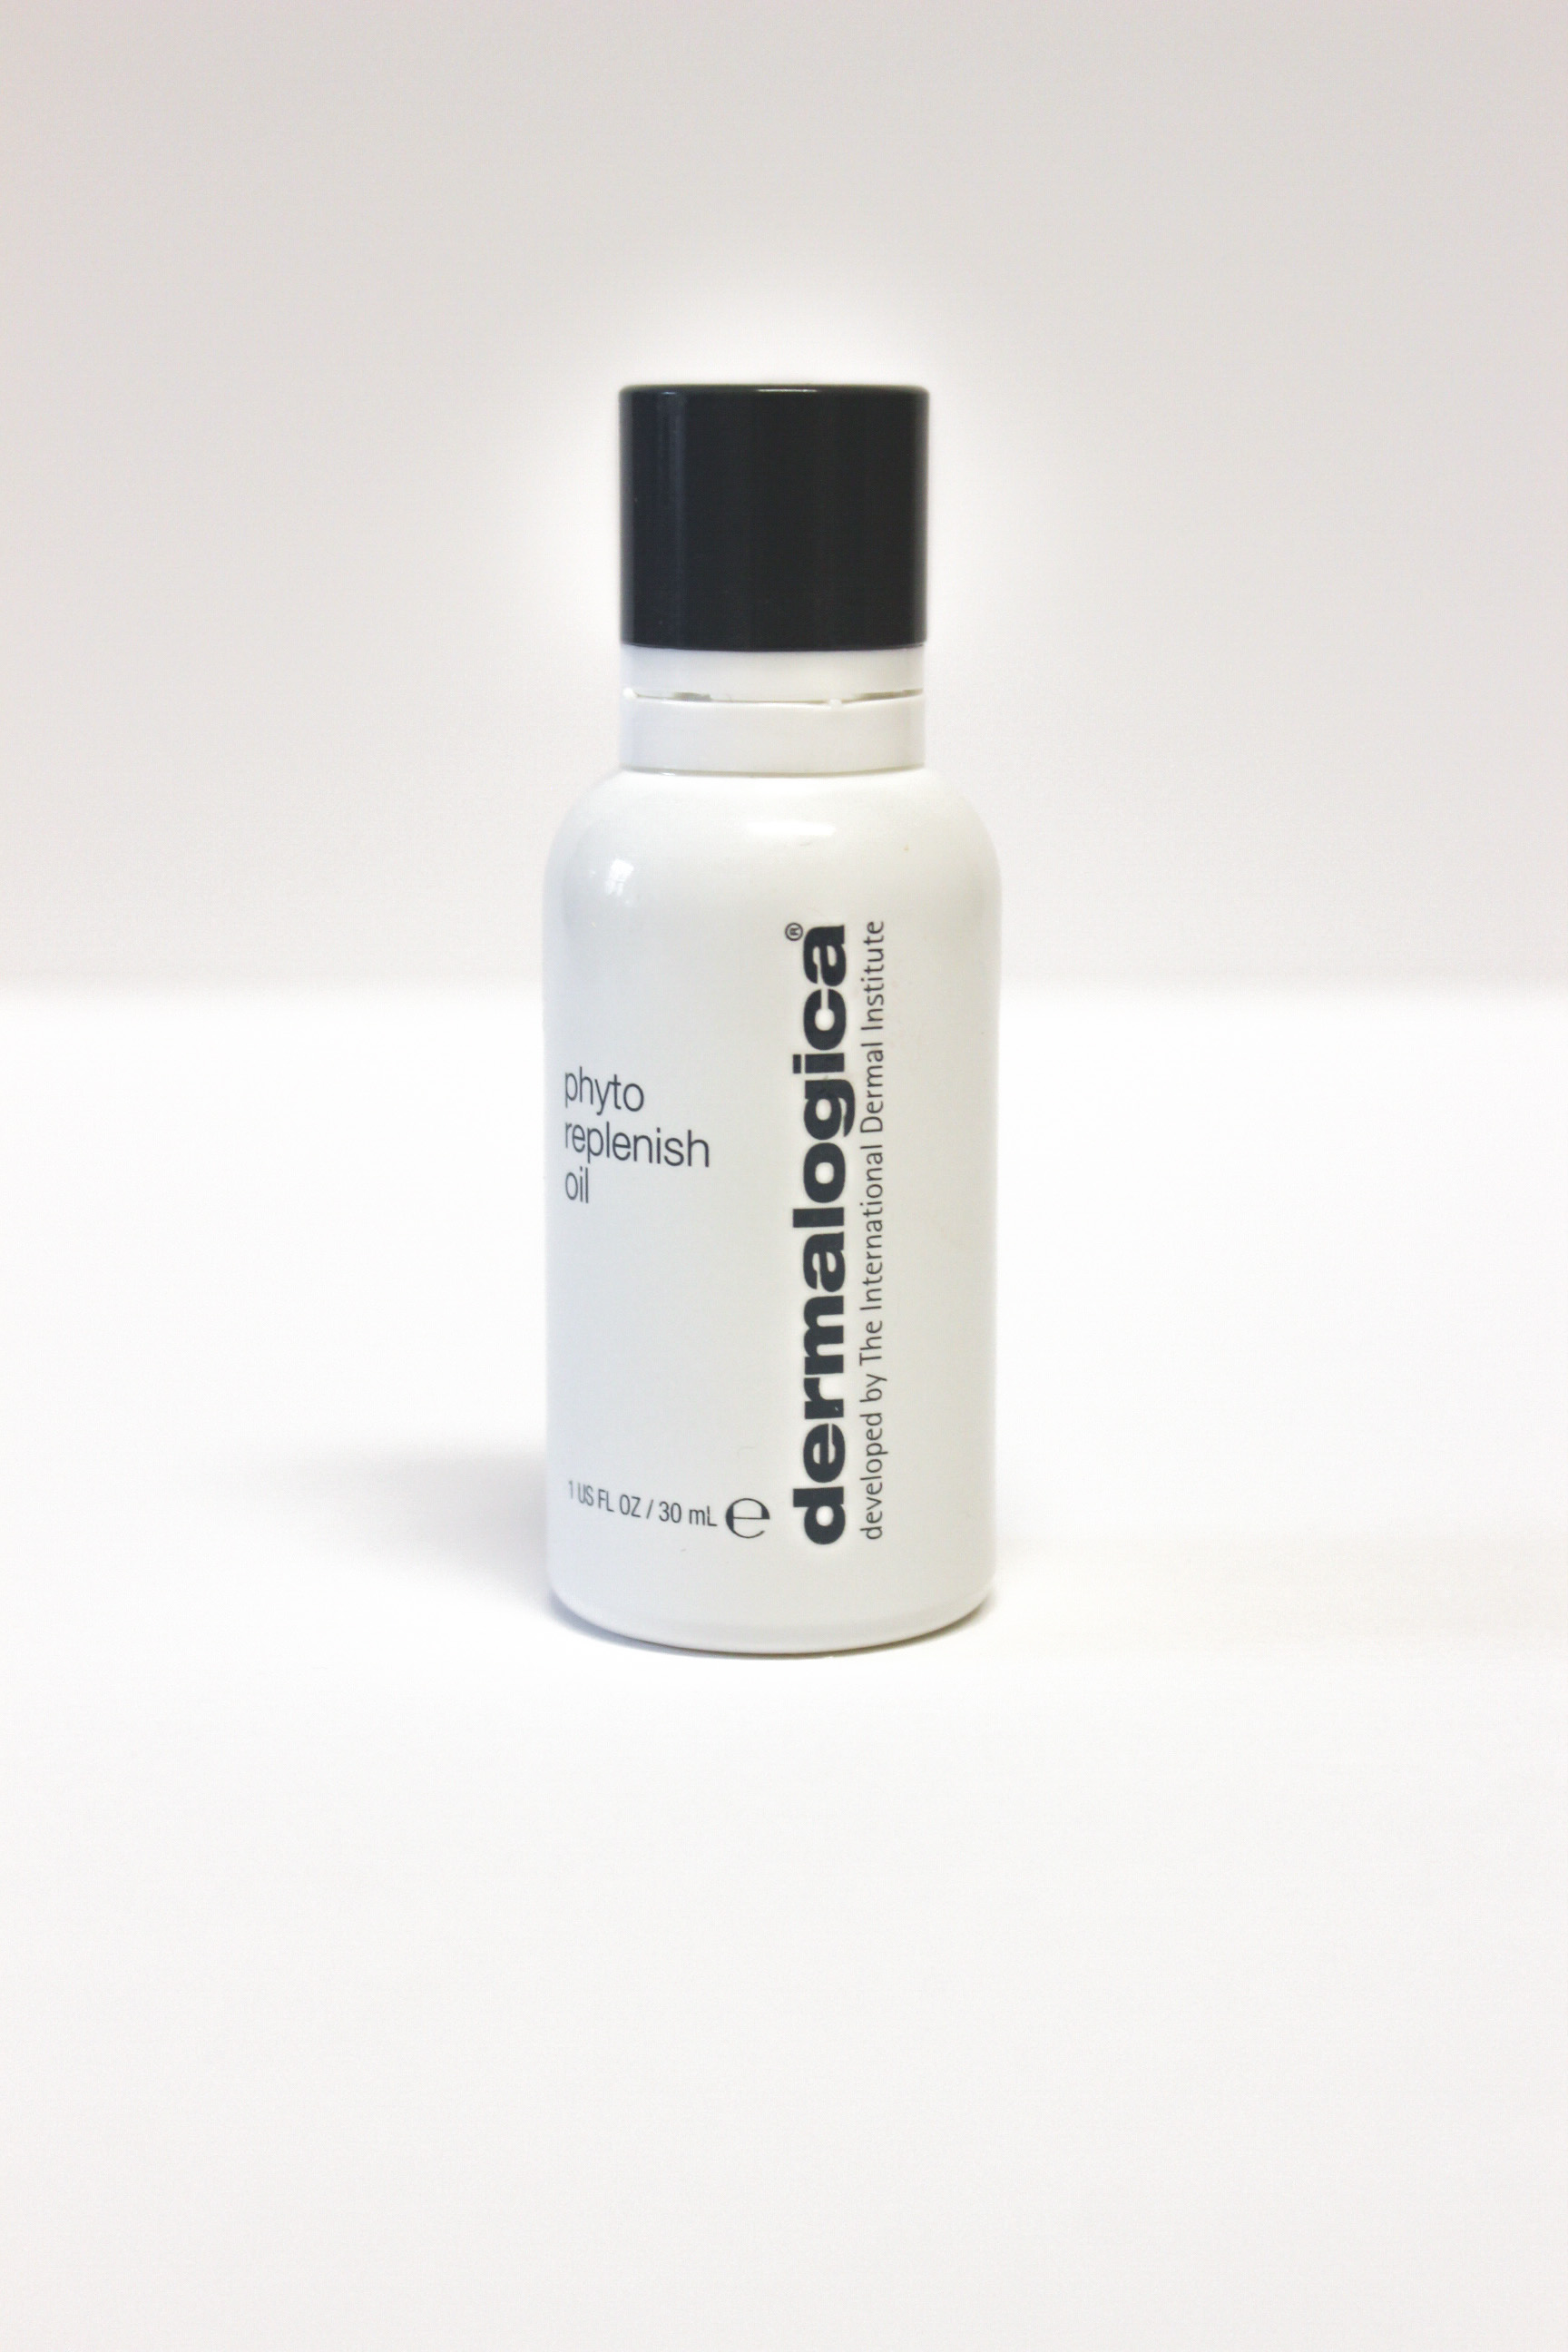 Dermalogica Phyto Repenish Oil Review